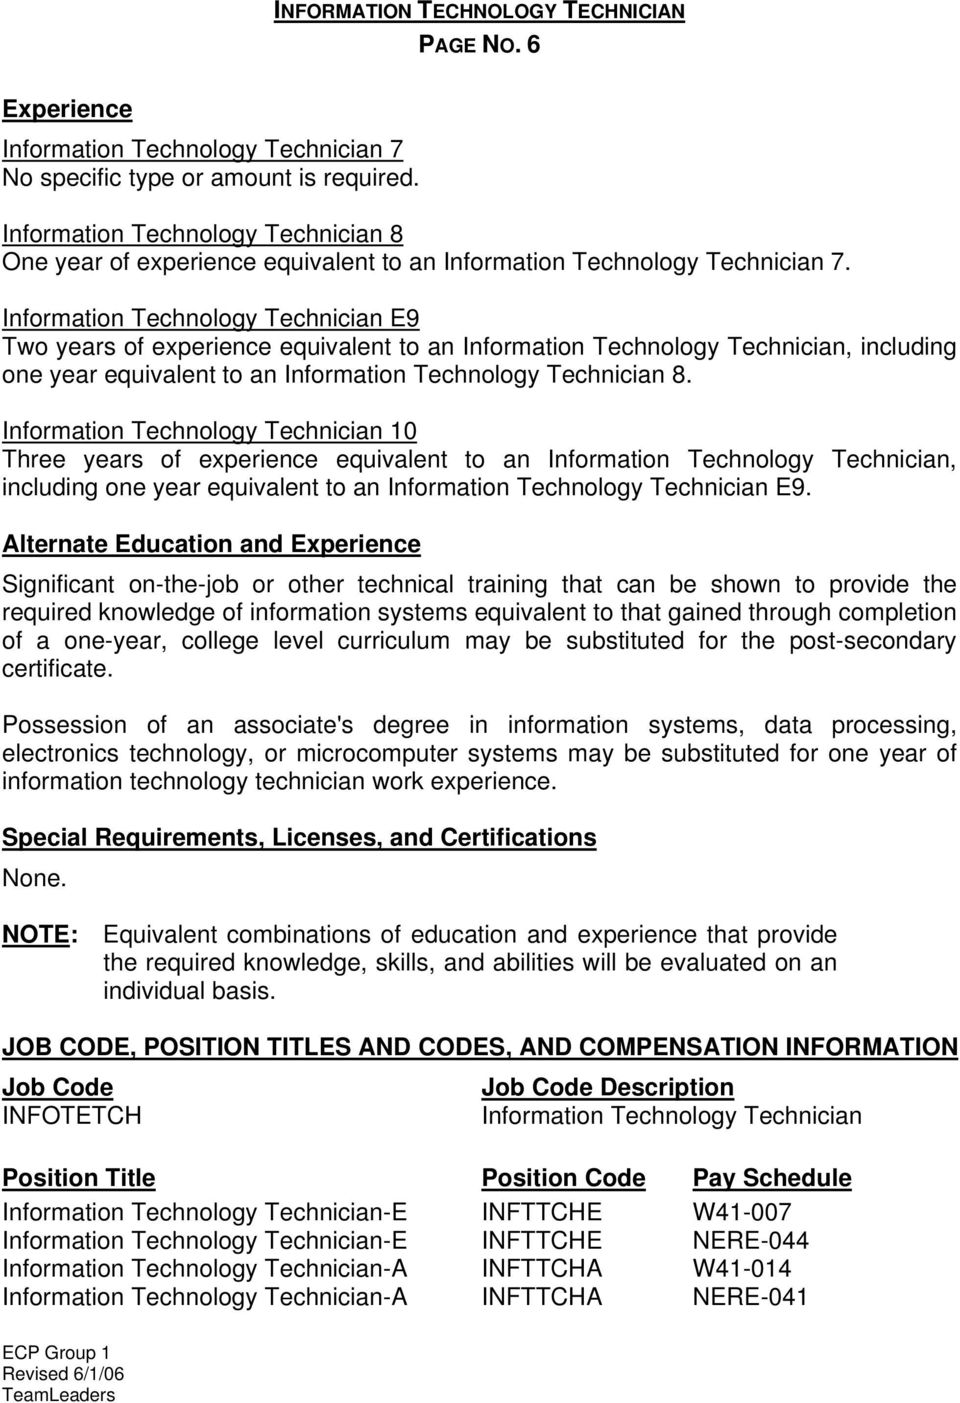 Information Technology Technician E9 Two years of experience equivalent to an Information Technology Technician, including one year equivalent to an Information Technology Technician 8.